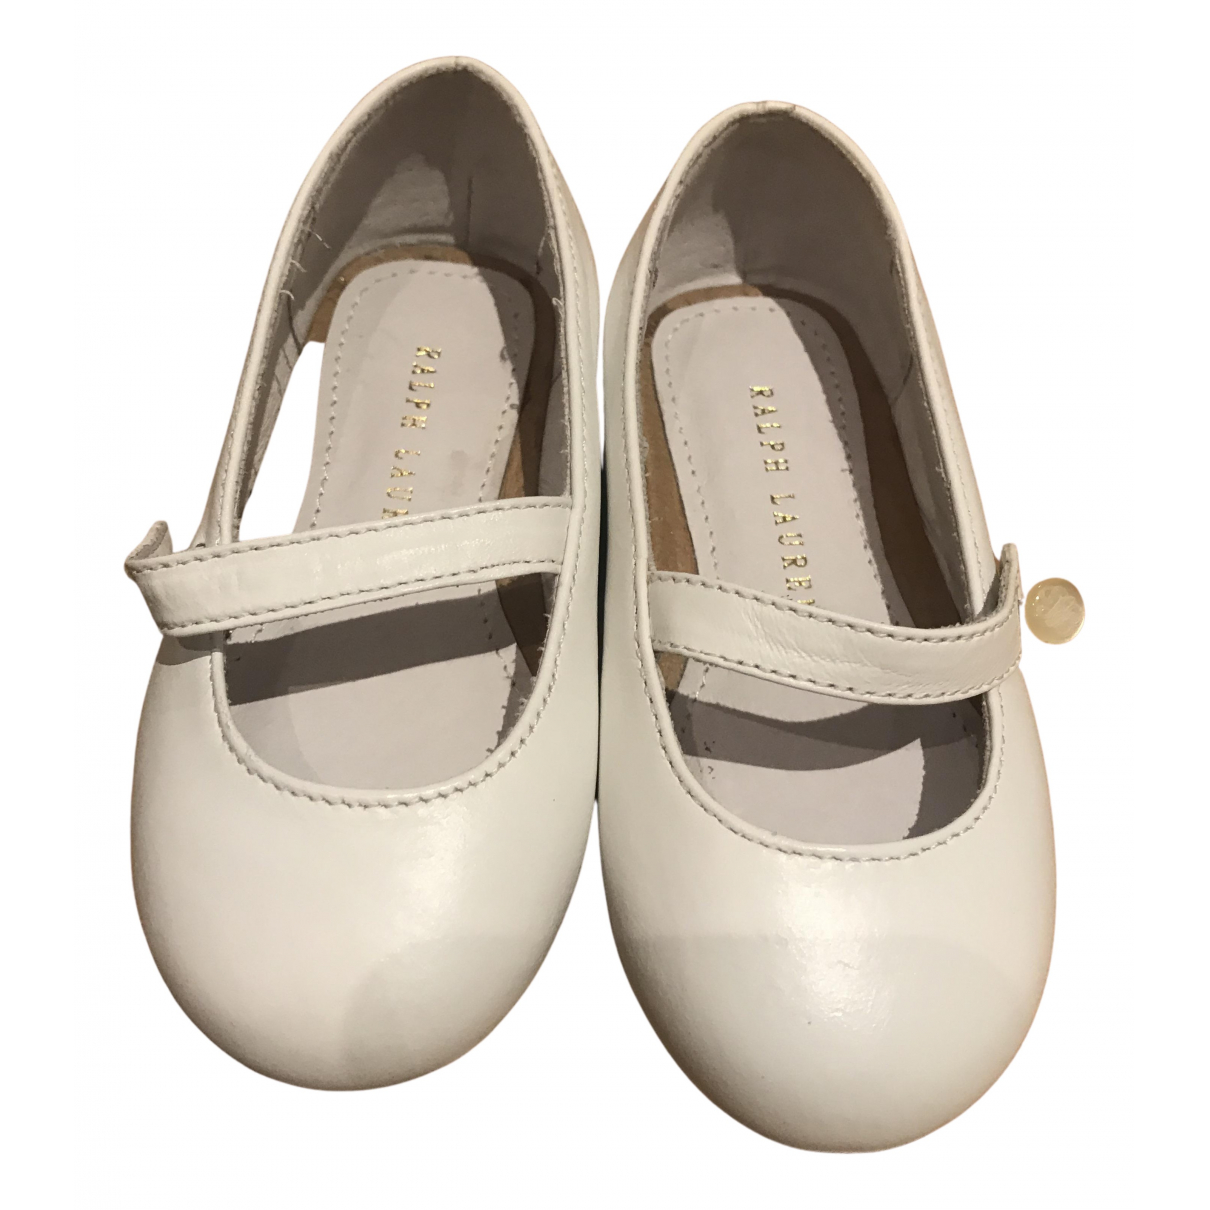 Ralph Lauren N White Leather First shoes for Kids 4.5 UK